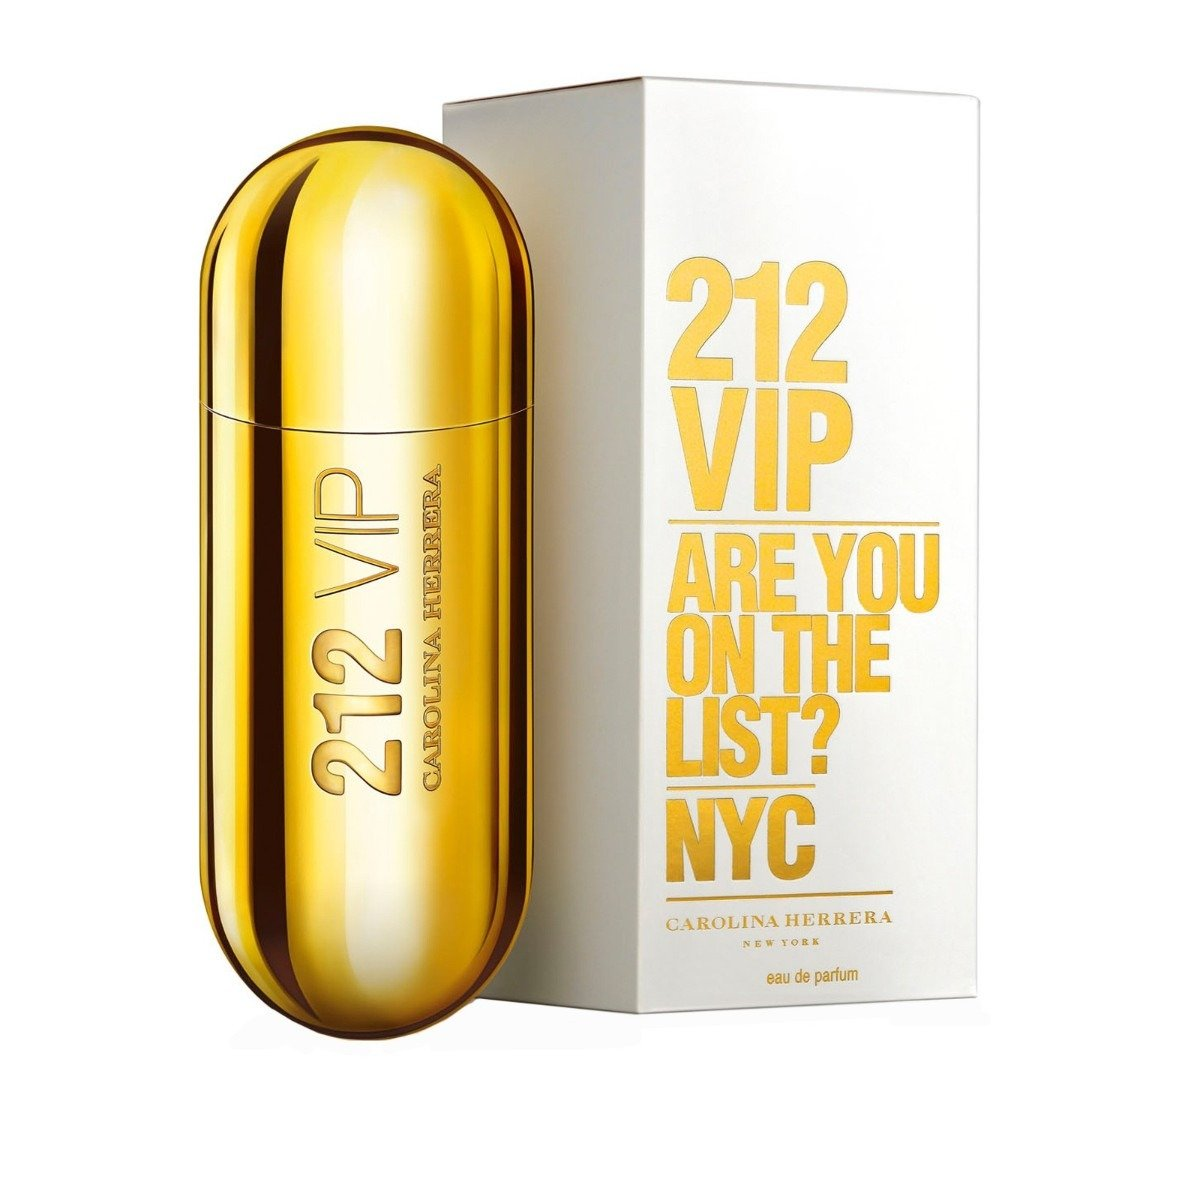 Amazon.com : Carolina Herrera 212 VIP Eau de Parfum Spray, 1.7 Ounce :  Beauty